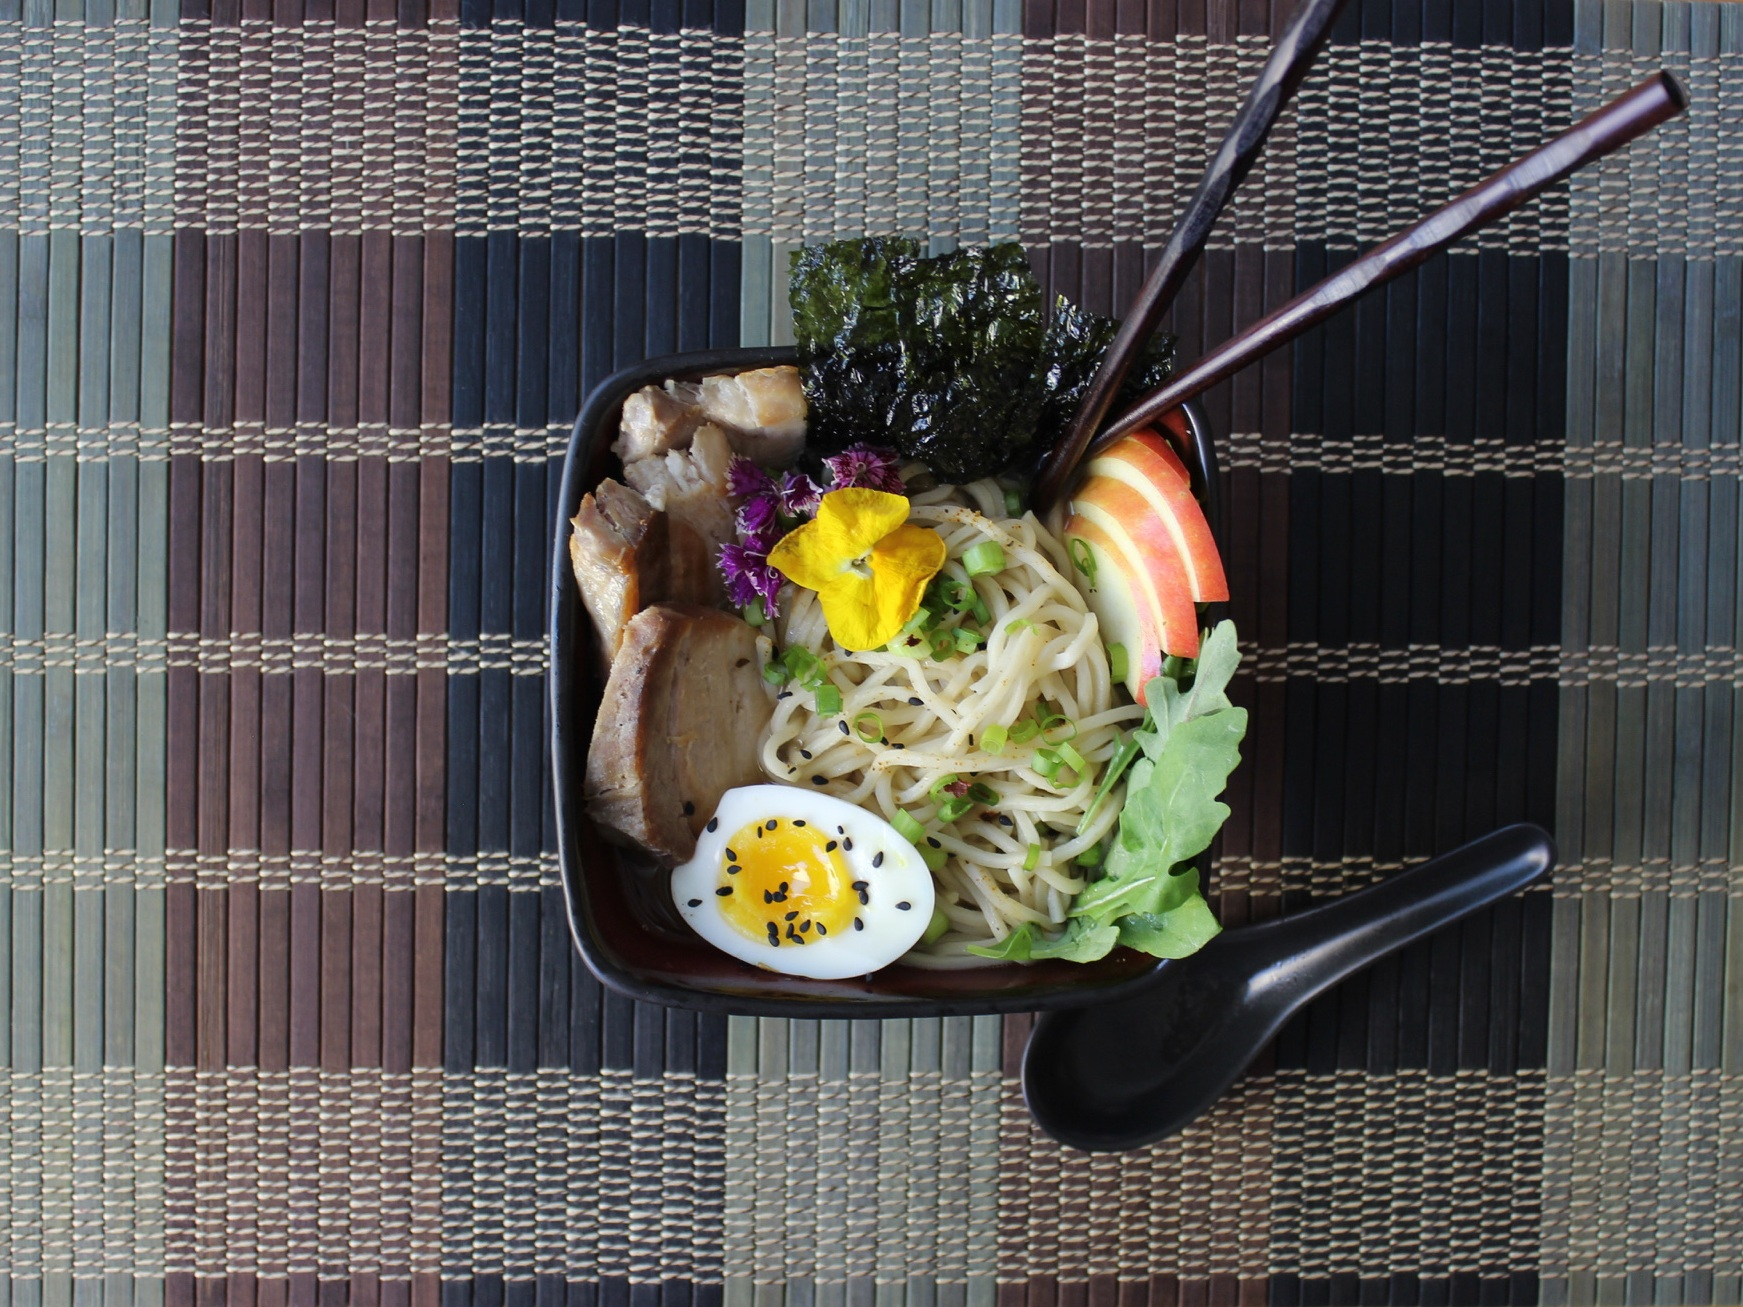 Miso Veggie Ramen Kit    prepared with soft-boiled egg, black sesame seeds, pan-fried pork, nori, apples, arugula, green onions, and edible flowers to garnish.